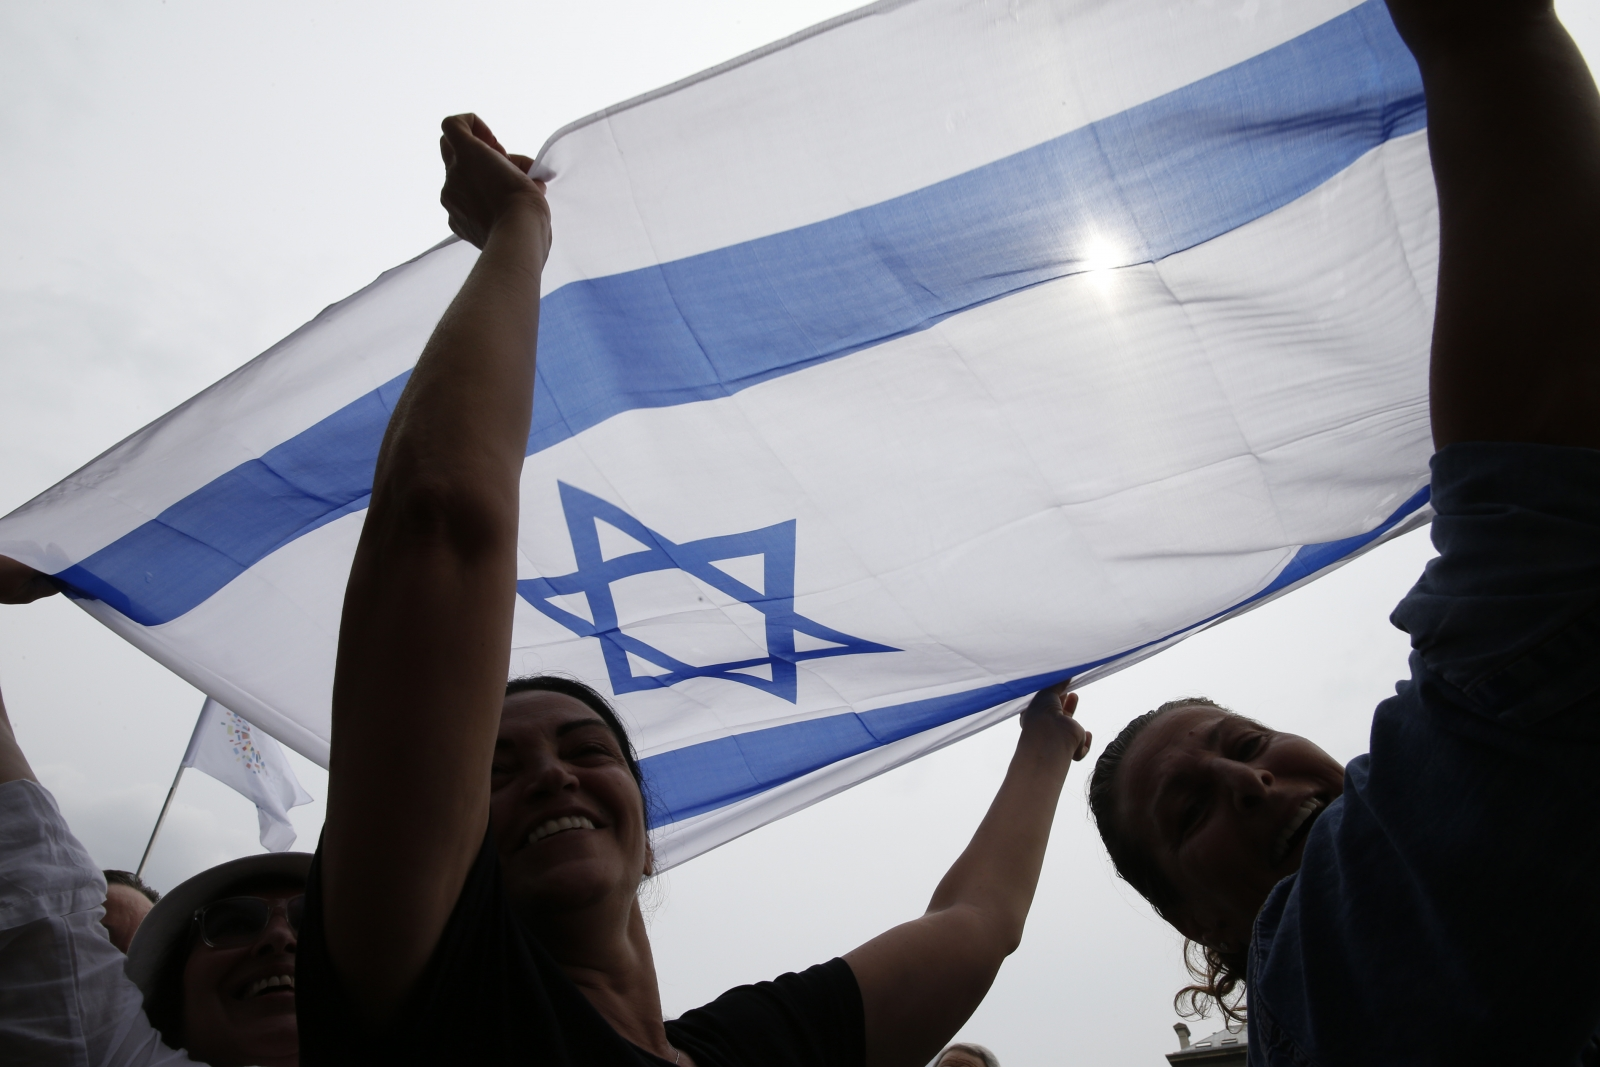 Israels online Iron Dome